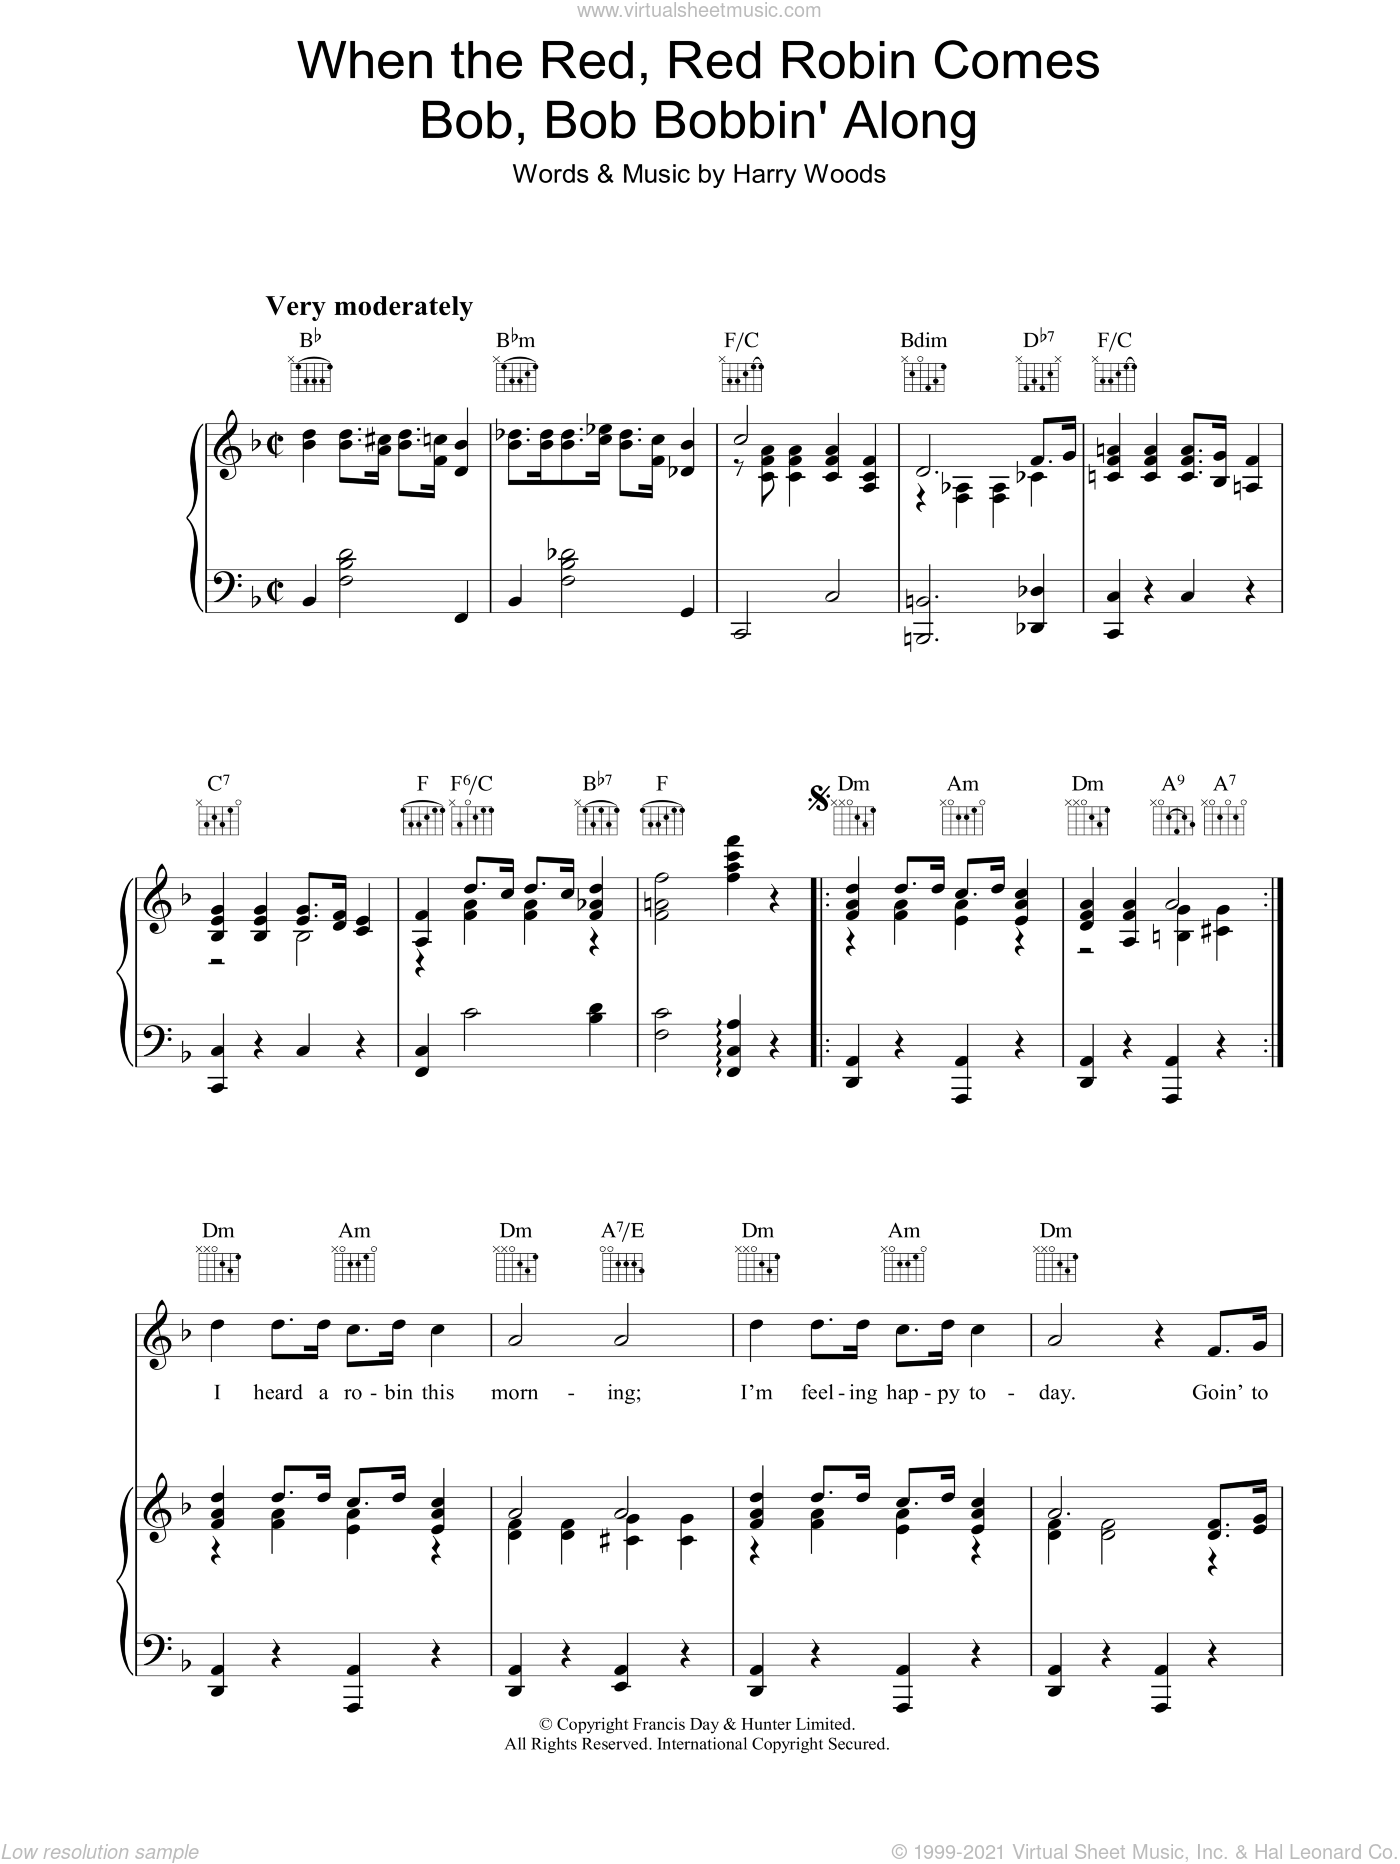 When The Red, Red Robin Comes Bob, Bob Bobbin' Along sheet music for voice, piano or guitar by Harry Woods. Score Image Preview.